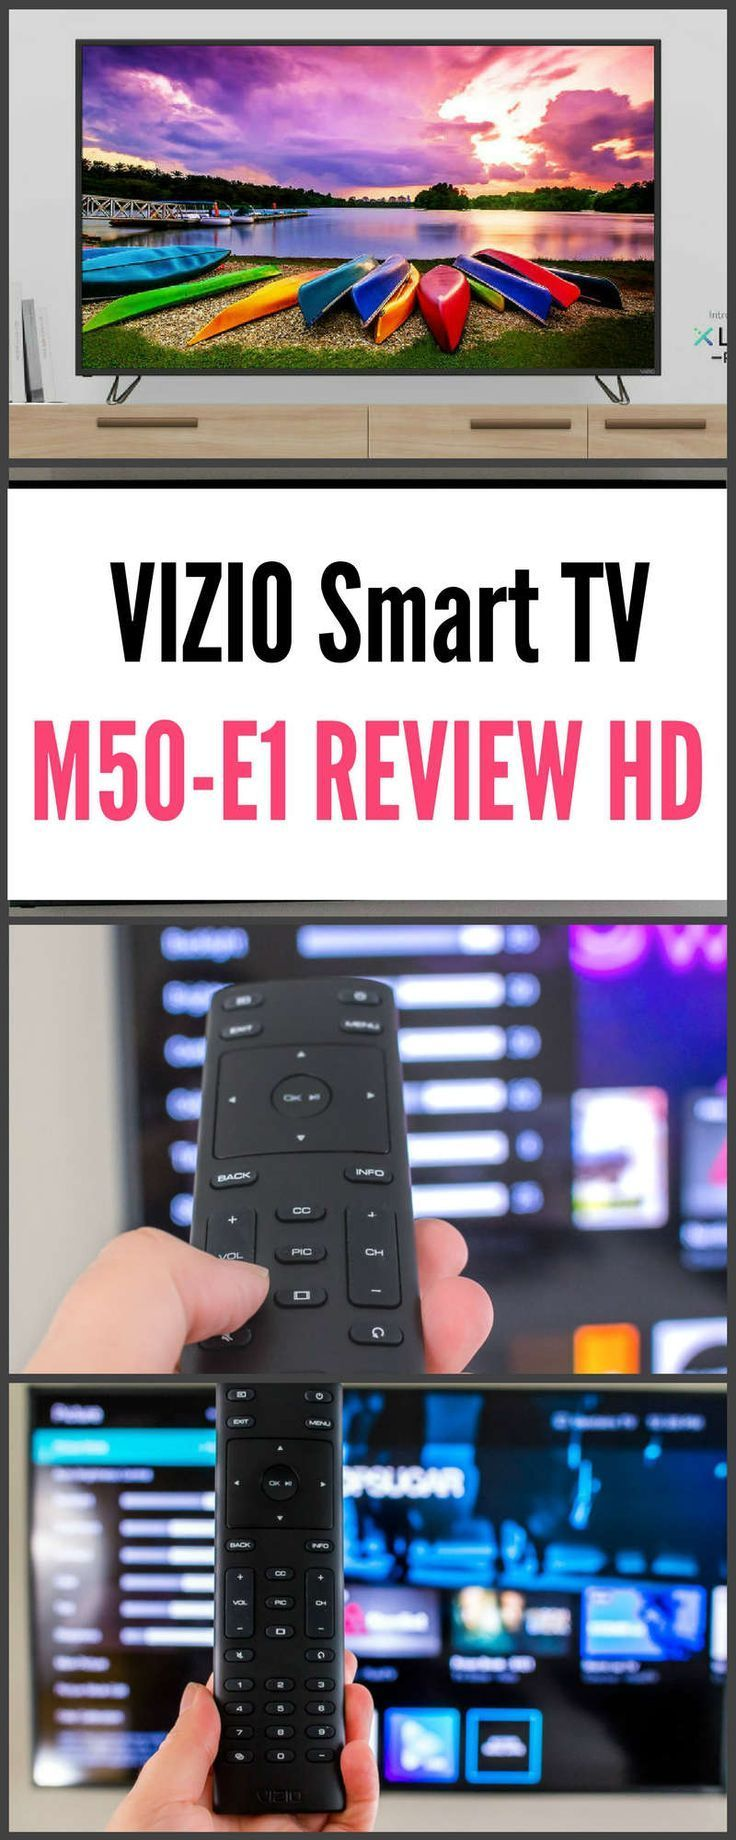 VIZIO Smart TV VIZIO M50E1 Review 4K HD We are want to